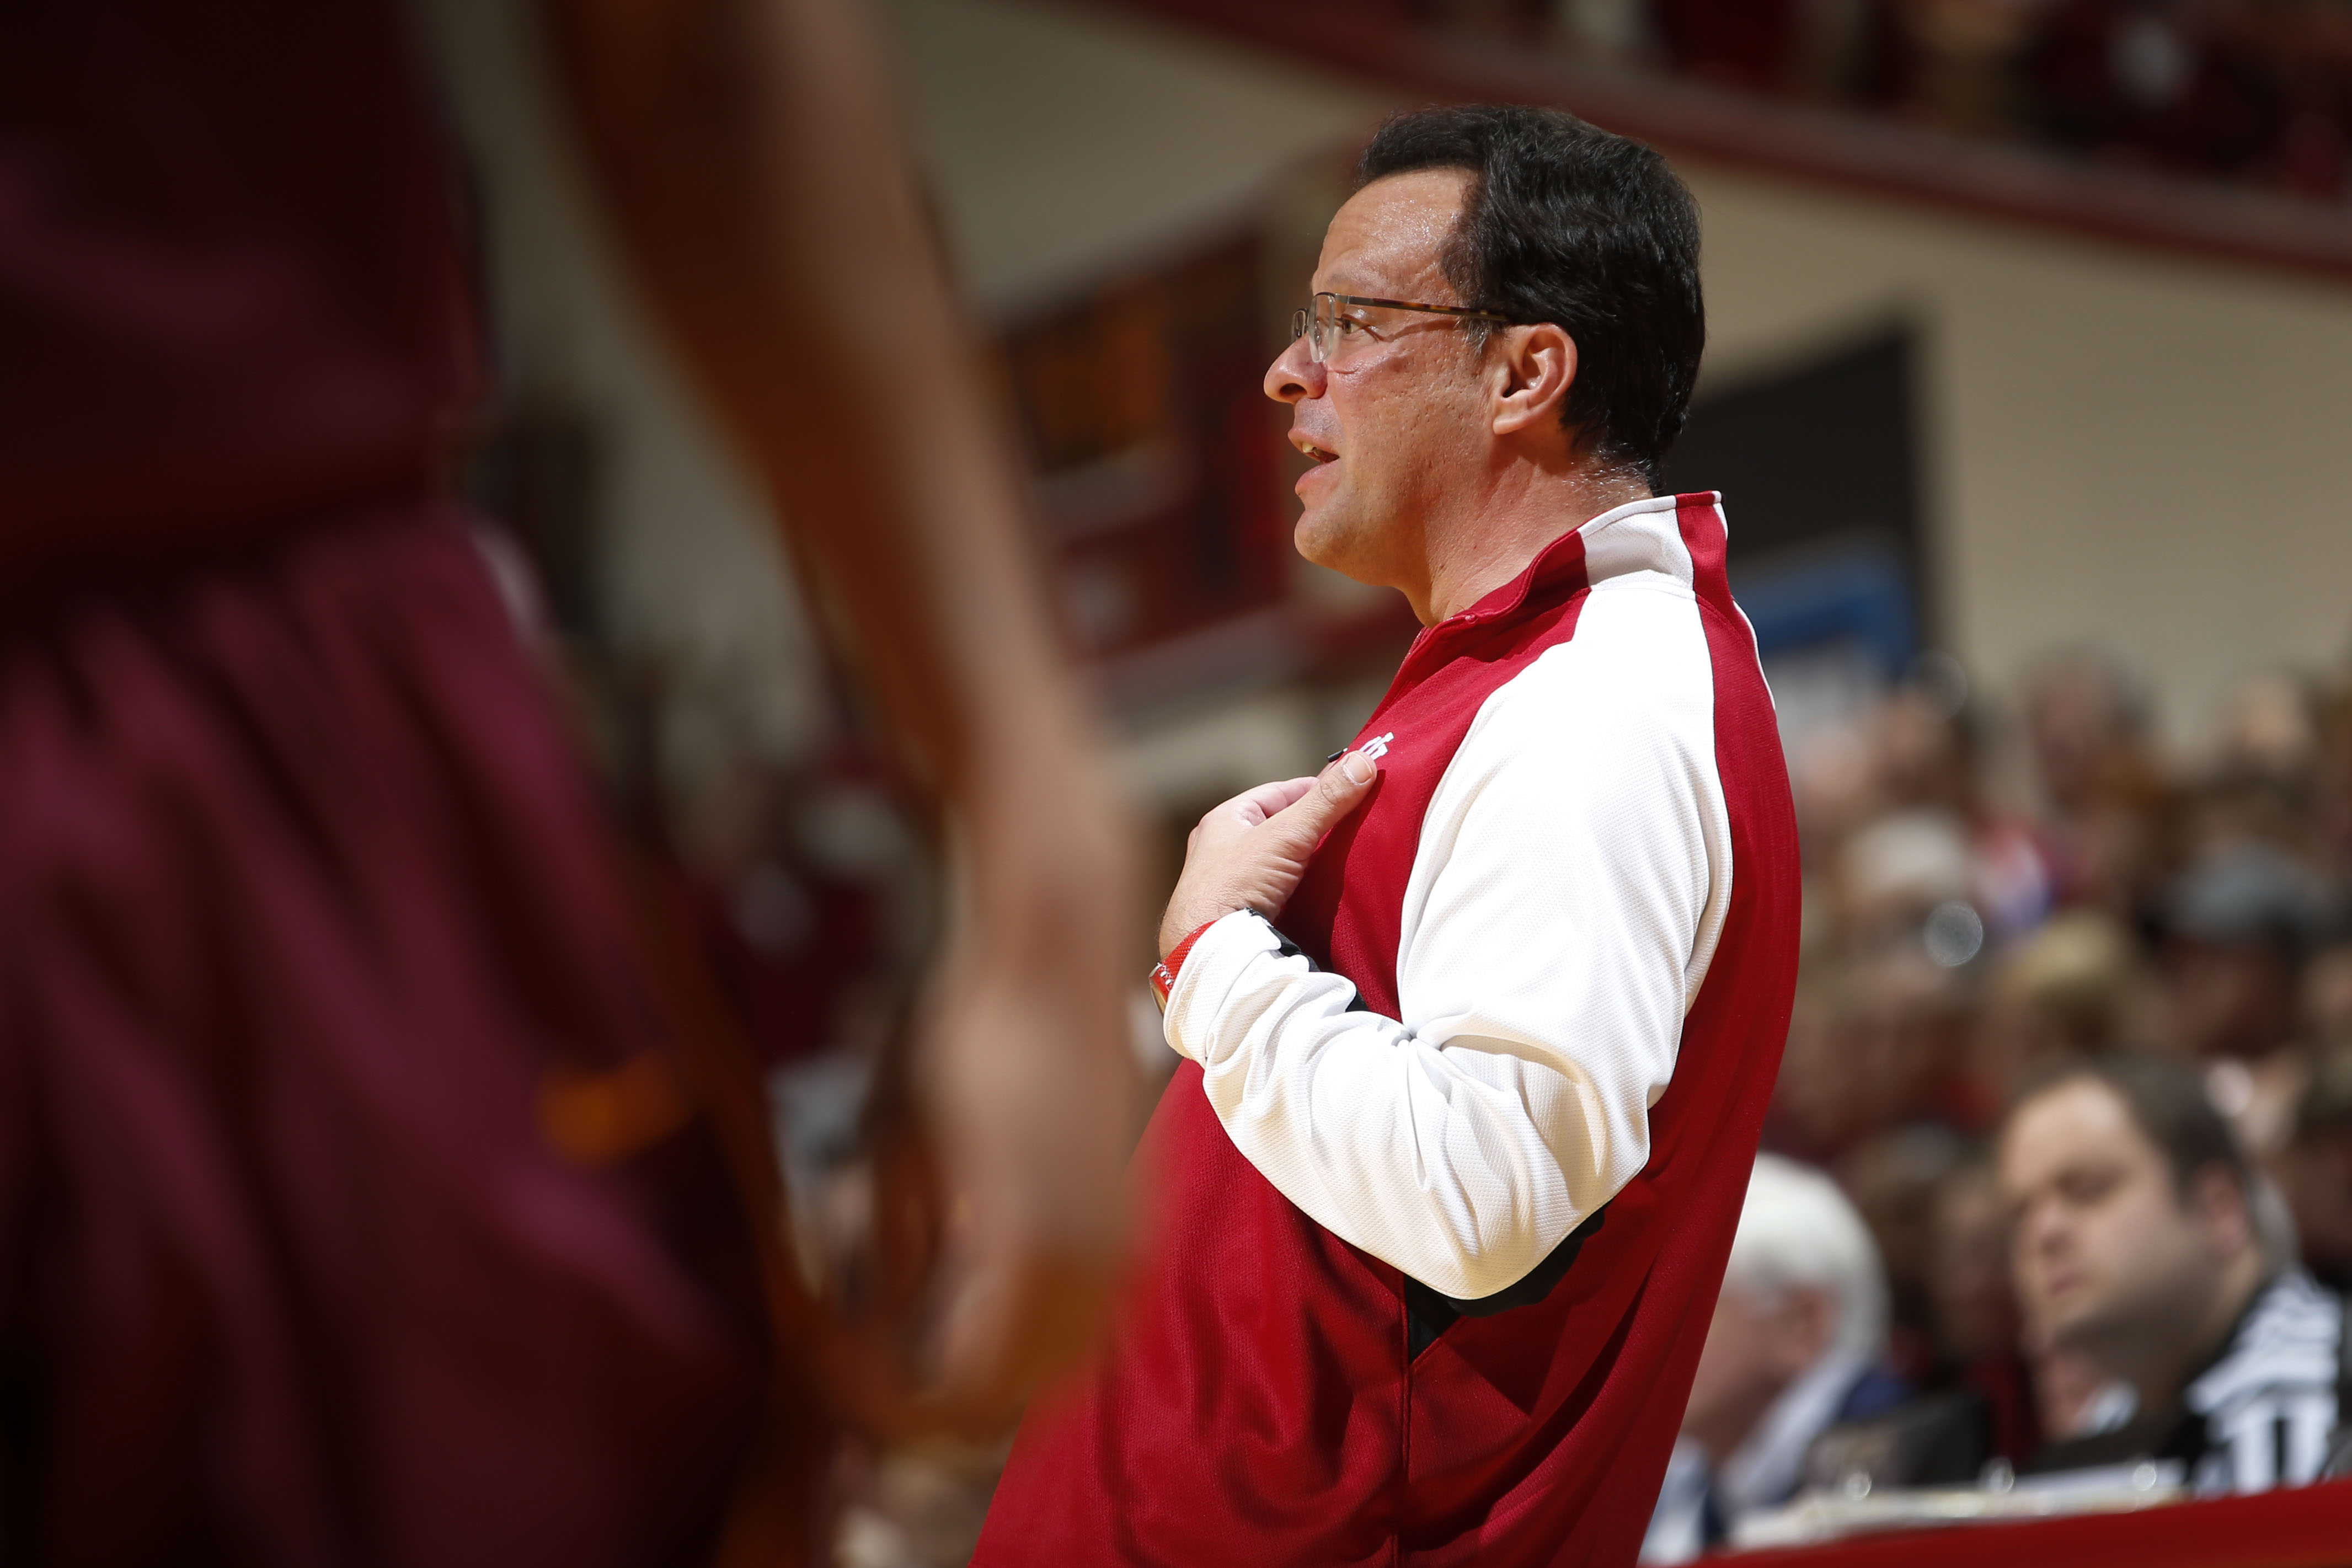 Indiana head coach Tom Crean reacts to a call while playing Minnesota in the first half of an NCAA college basketball game in Bloomington, Ind., Saturday, Jan. 30, 2016. Indiana won 74-68. (AP Photo/AJ Mast)